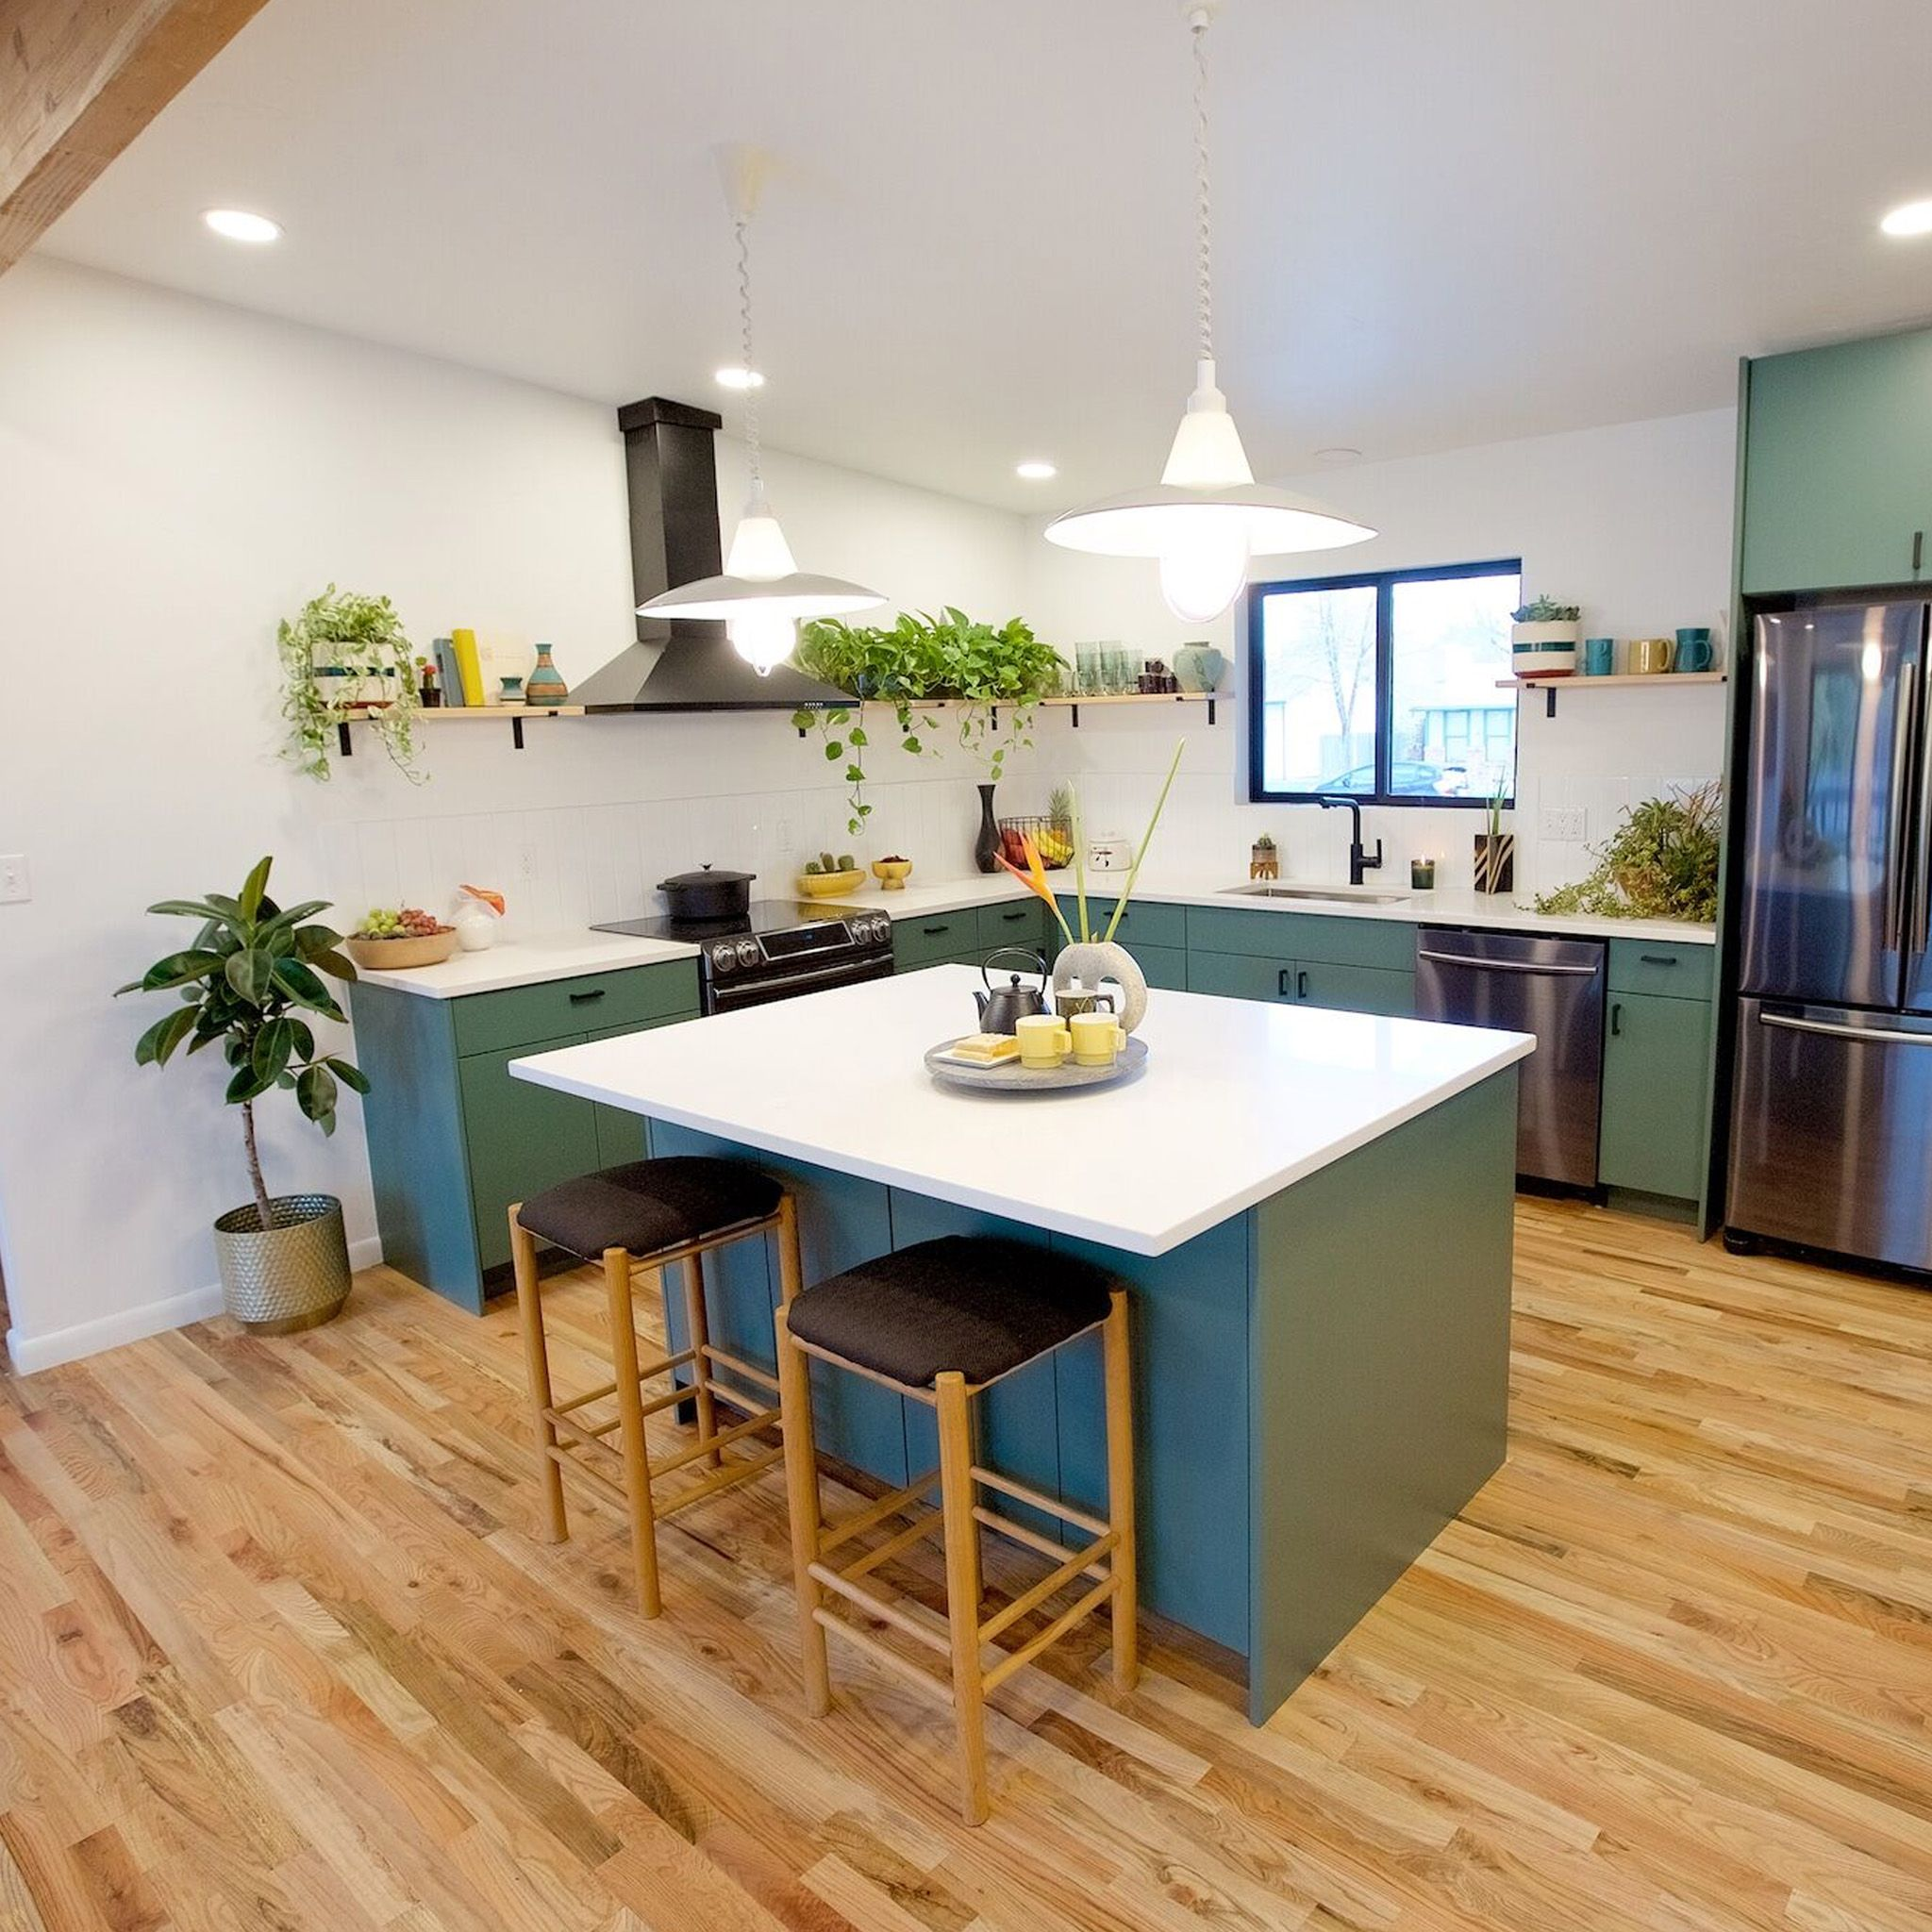 Timber And Love Design And Build Season Two S02 E05 The Circle House Circle House Green Kitchen House